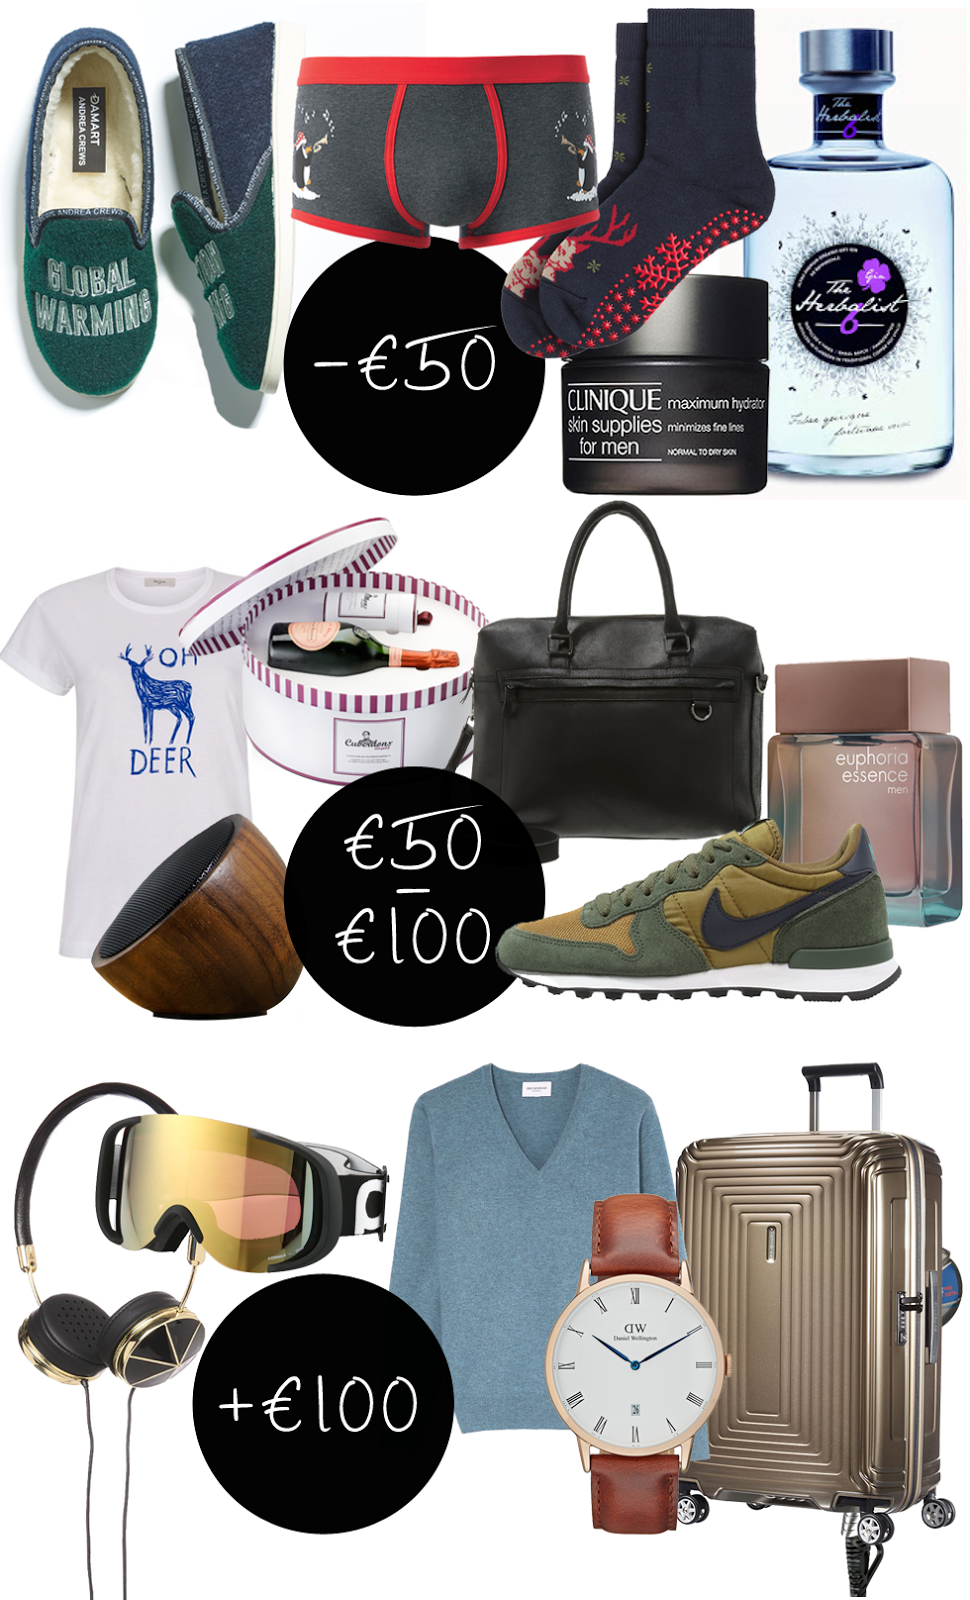 WIshlist, holidays, gift guide, men, women, his, her, budget, christmas,